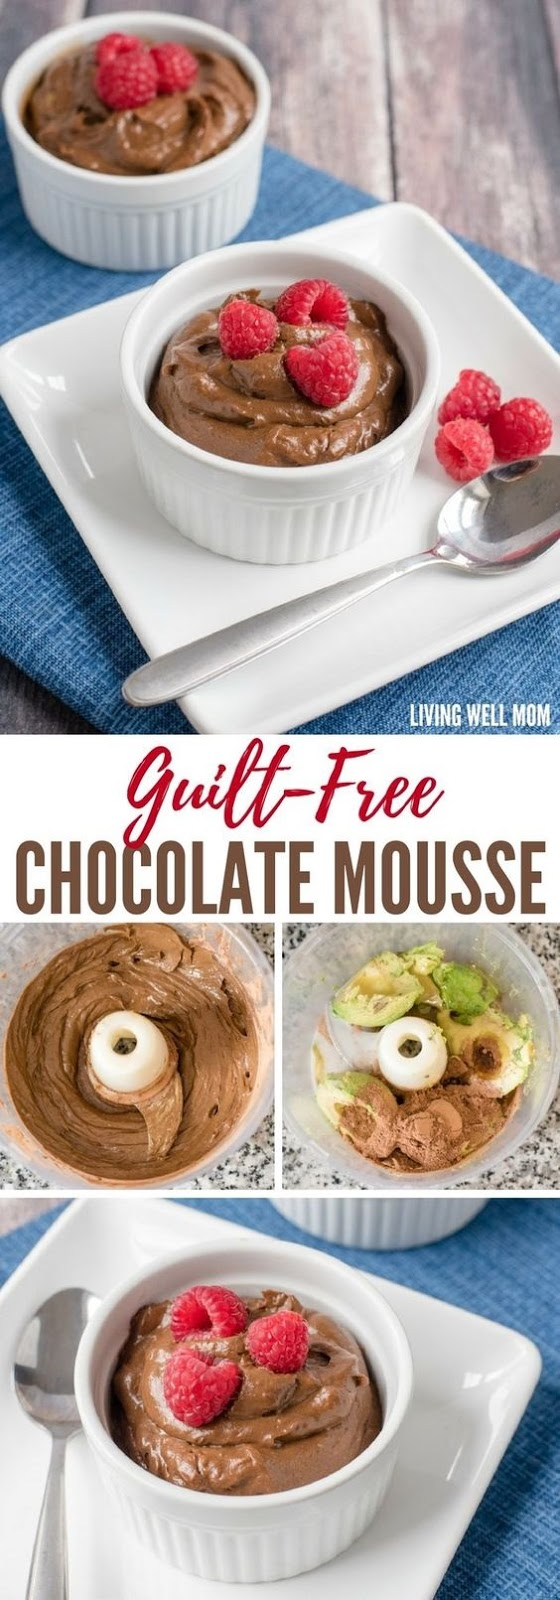 Guilt-Free Healthy Chocolate Mousse